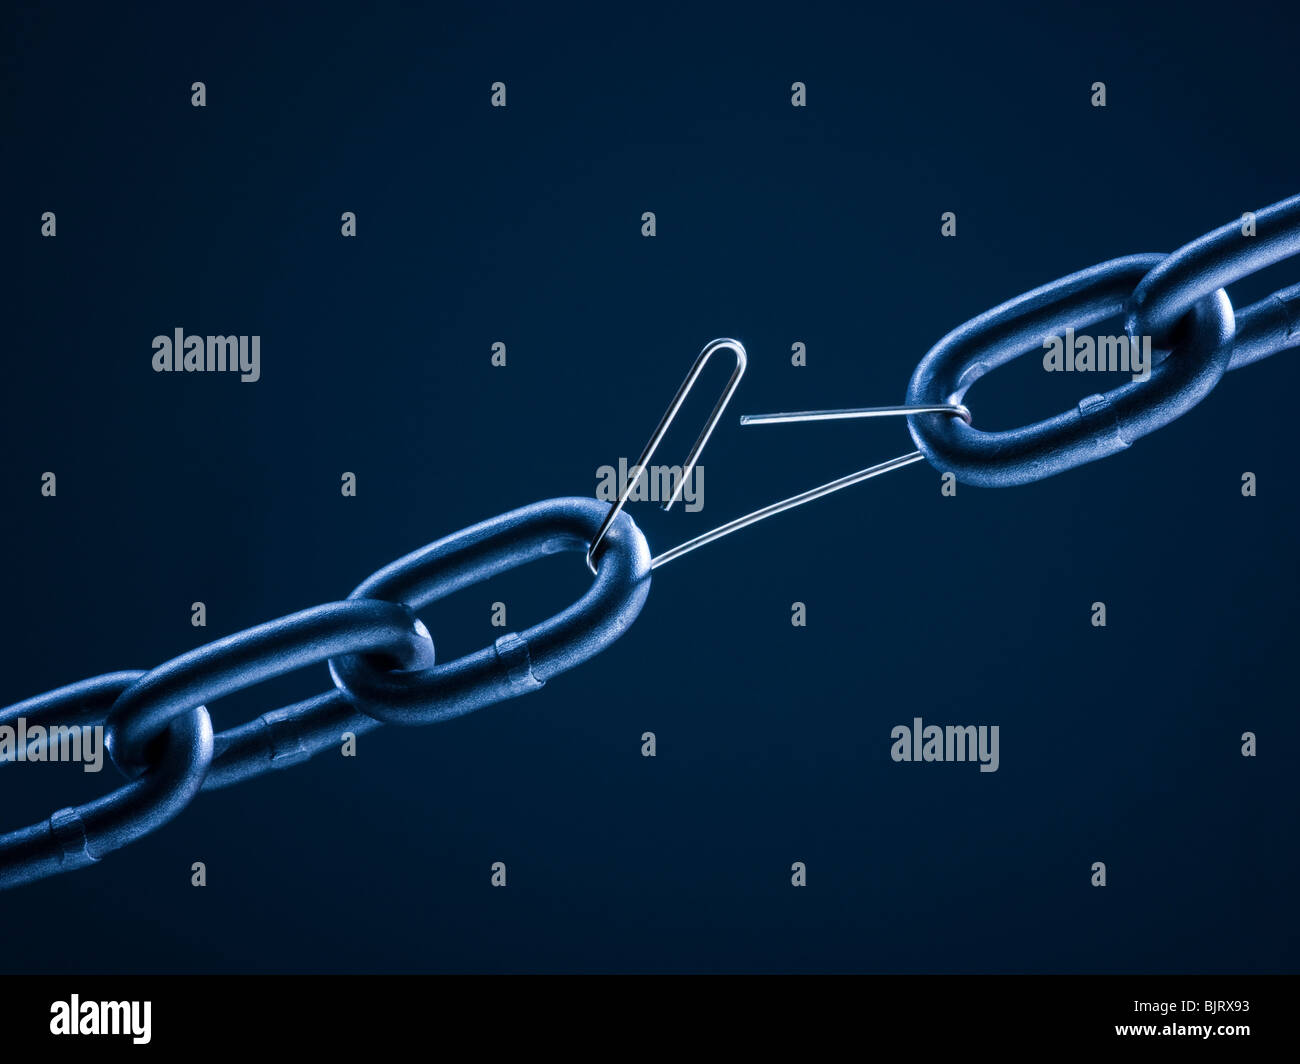 Chain linked with broken paper clip against blue background - Stock Image